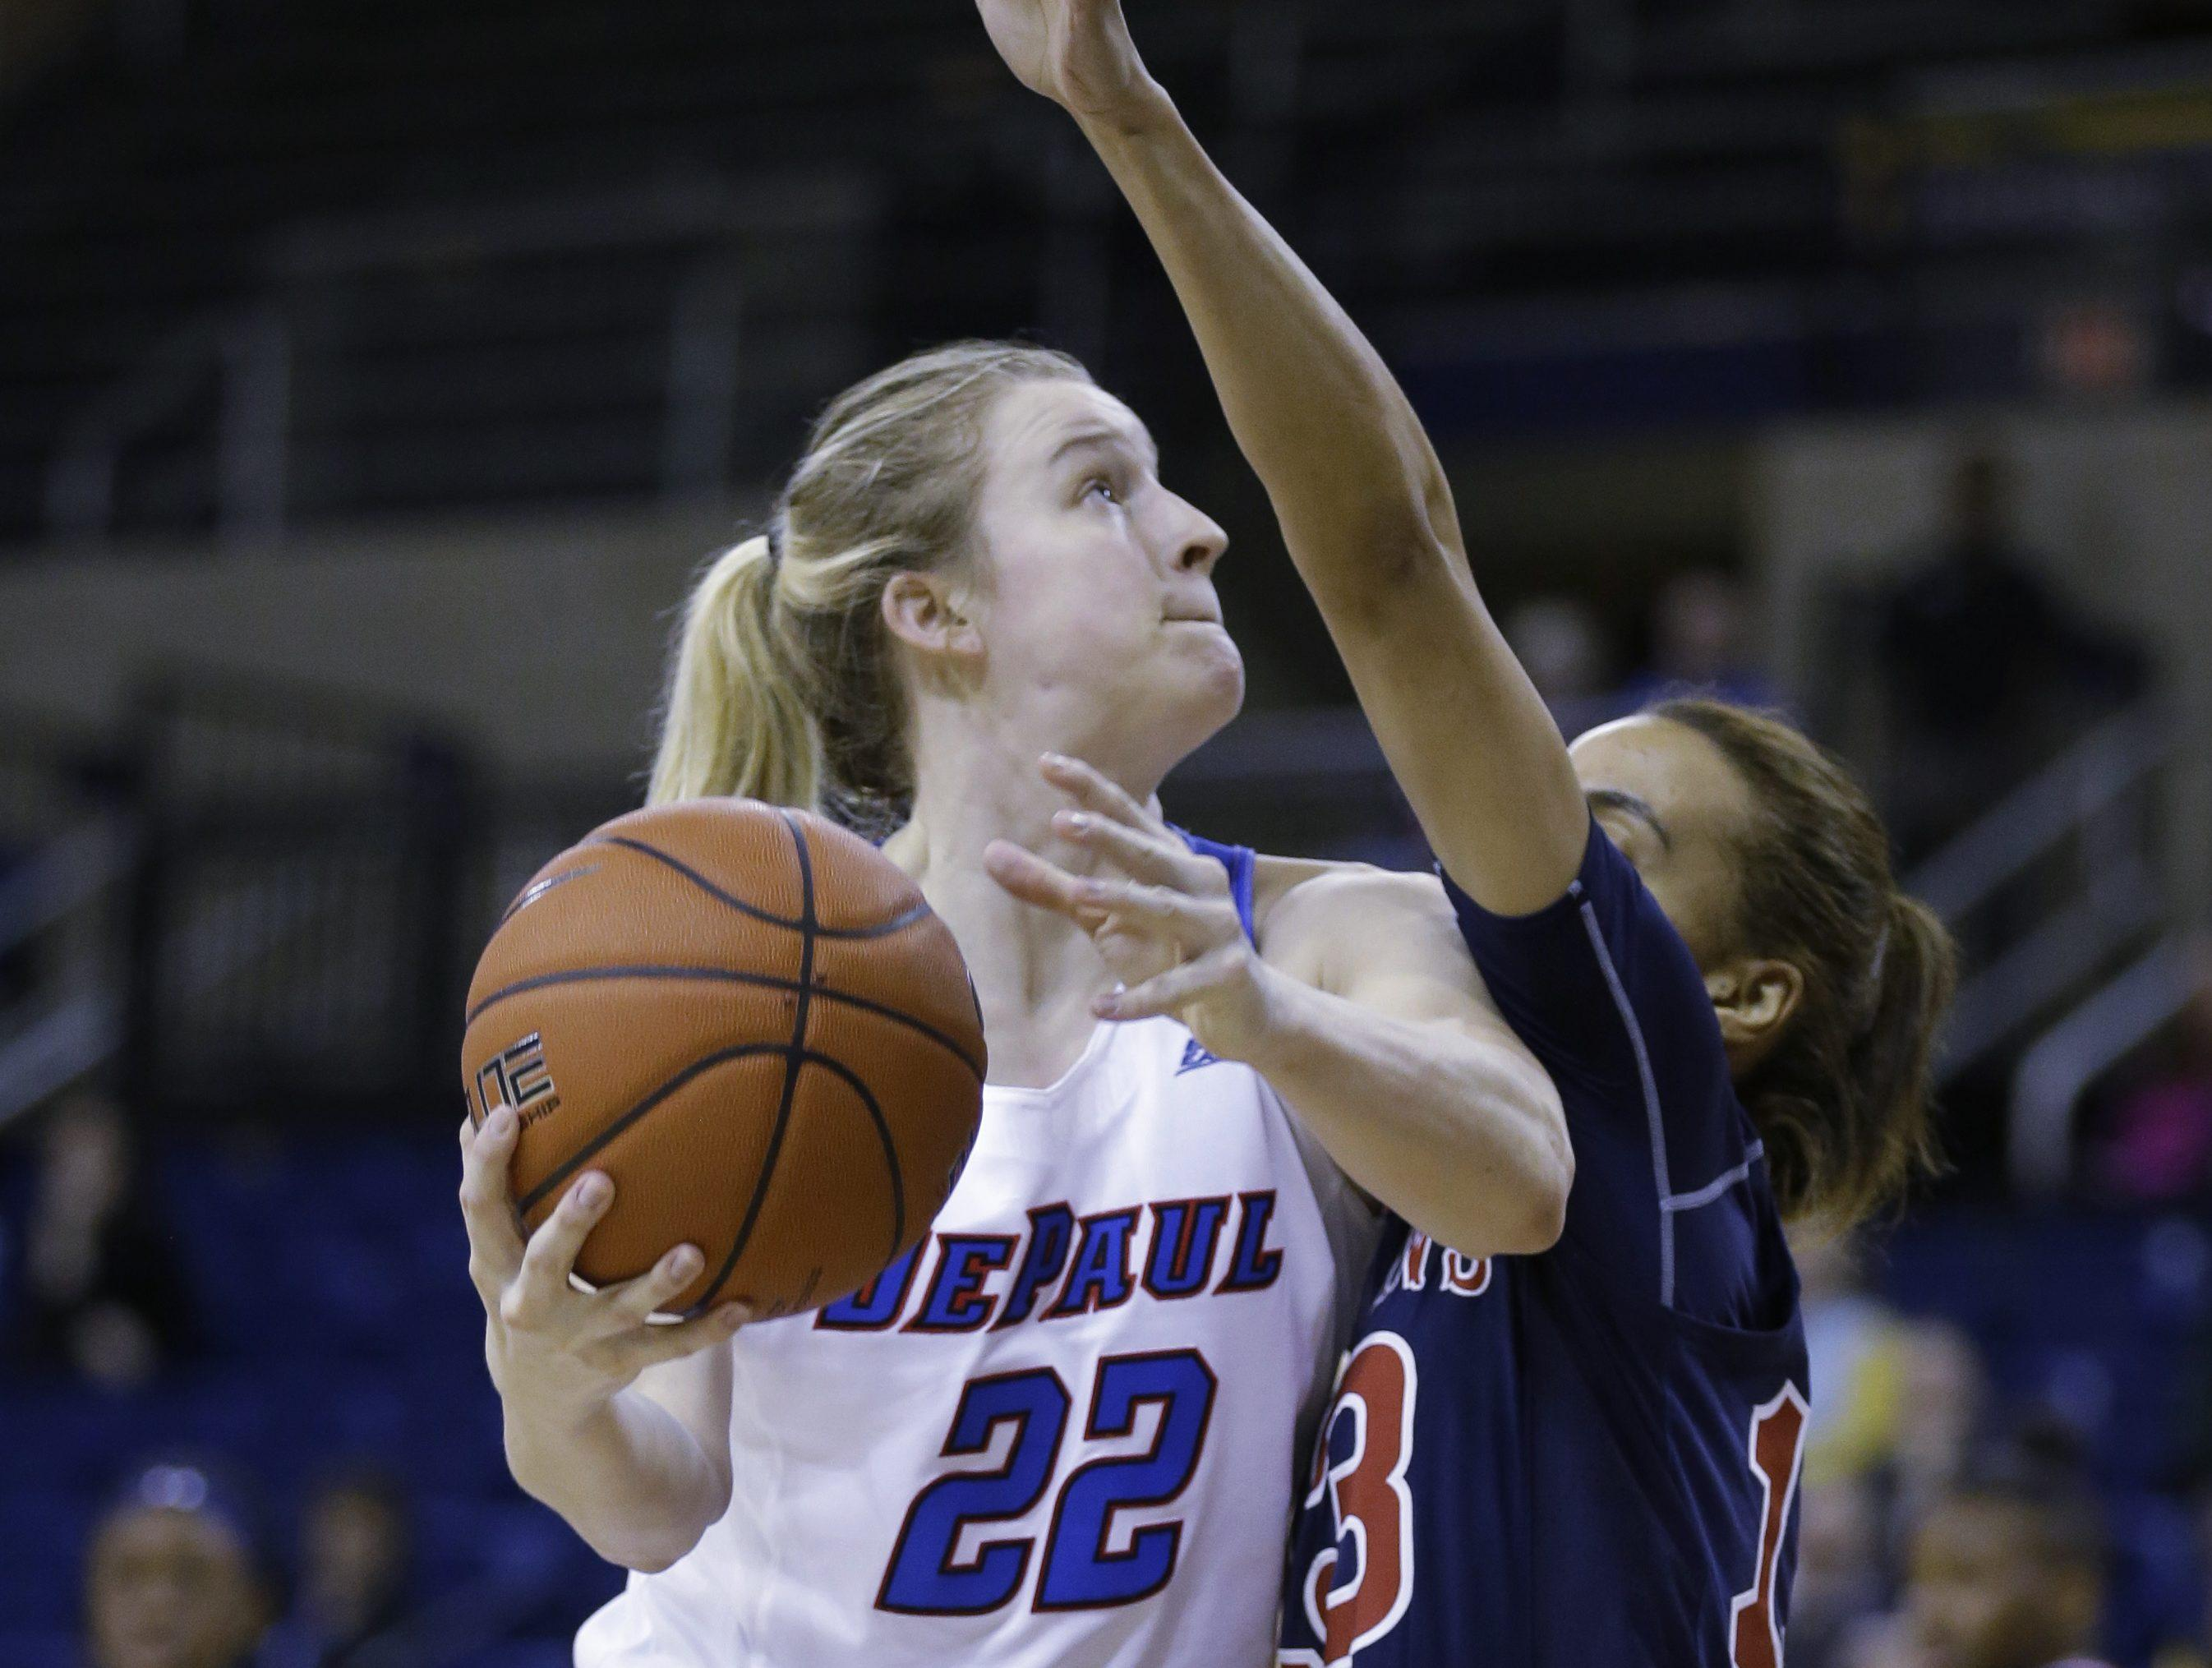 DePaul's Brooke Schulte (22) drives against St. John's Crystal Simmons during the first half of an NCAA women's semifinal Big East tournament game, Monday, March 6, 2017, at the Al McGuire Center in Milwaukee. (AP Photo/Jeffrey Phelps)